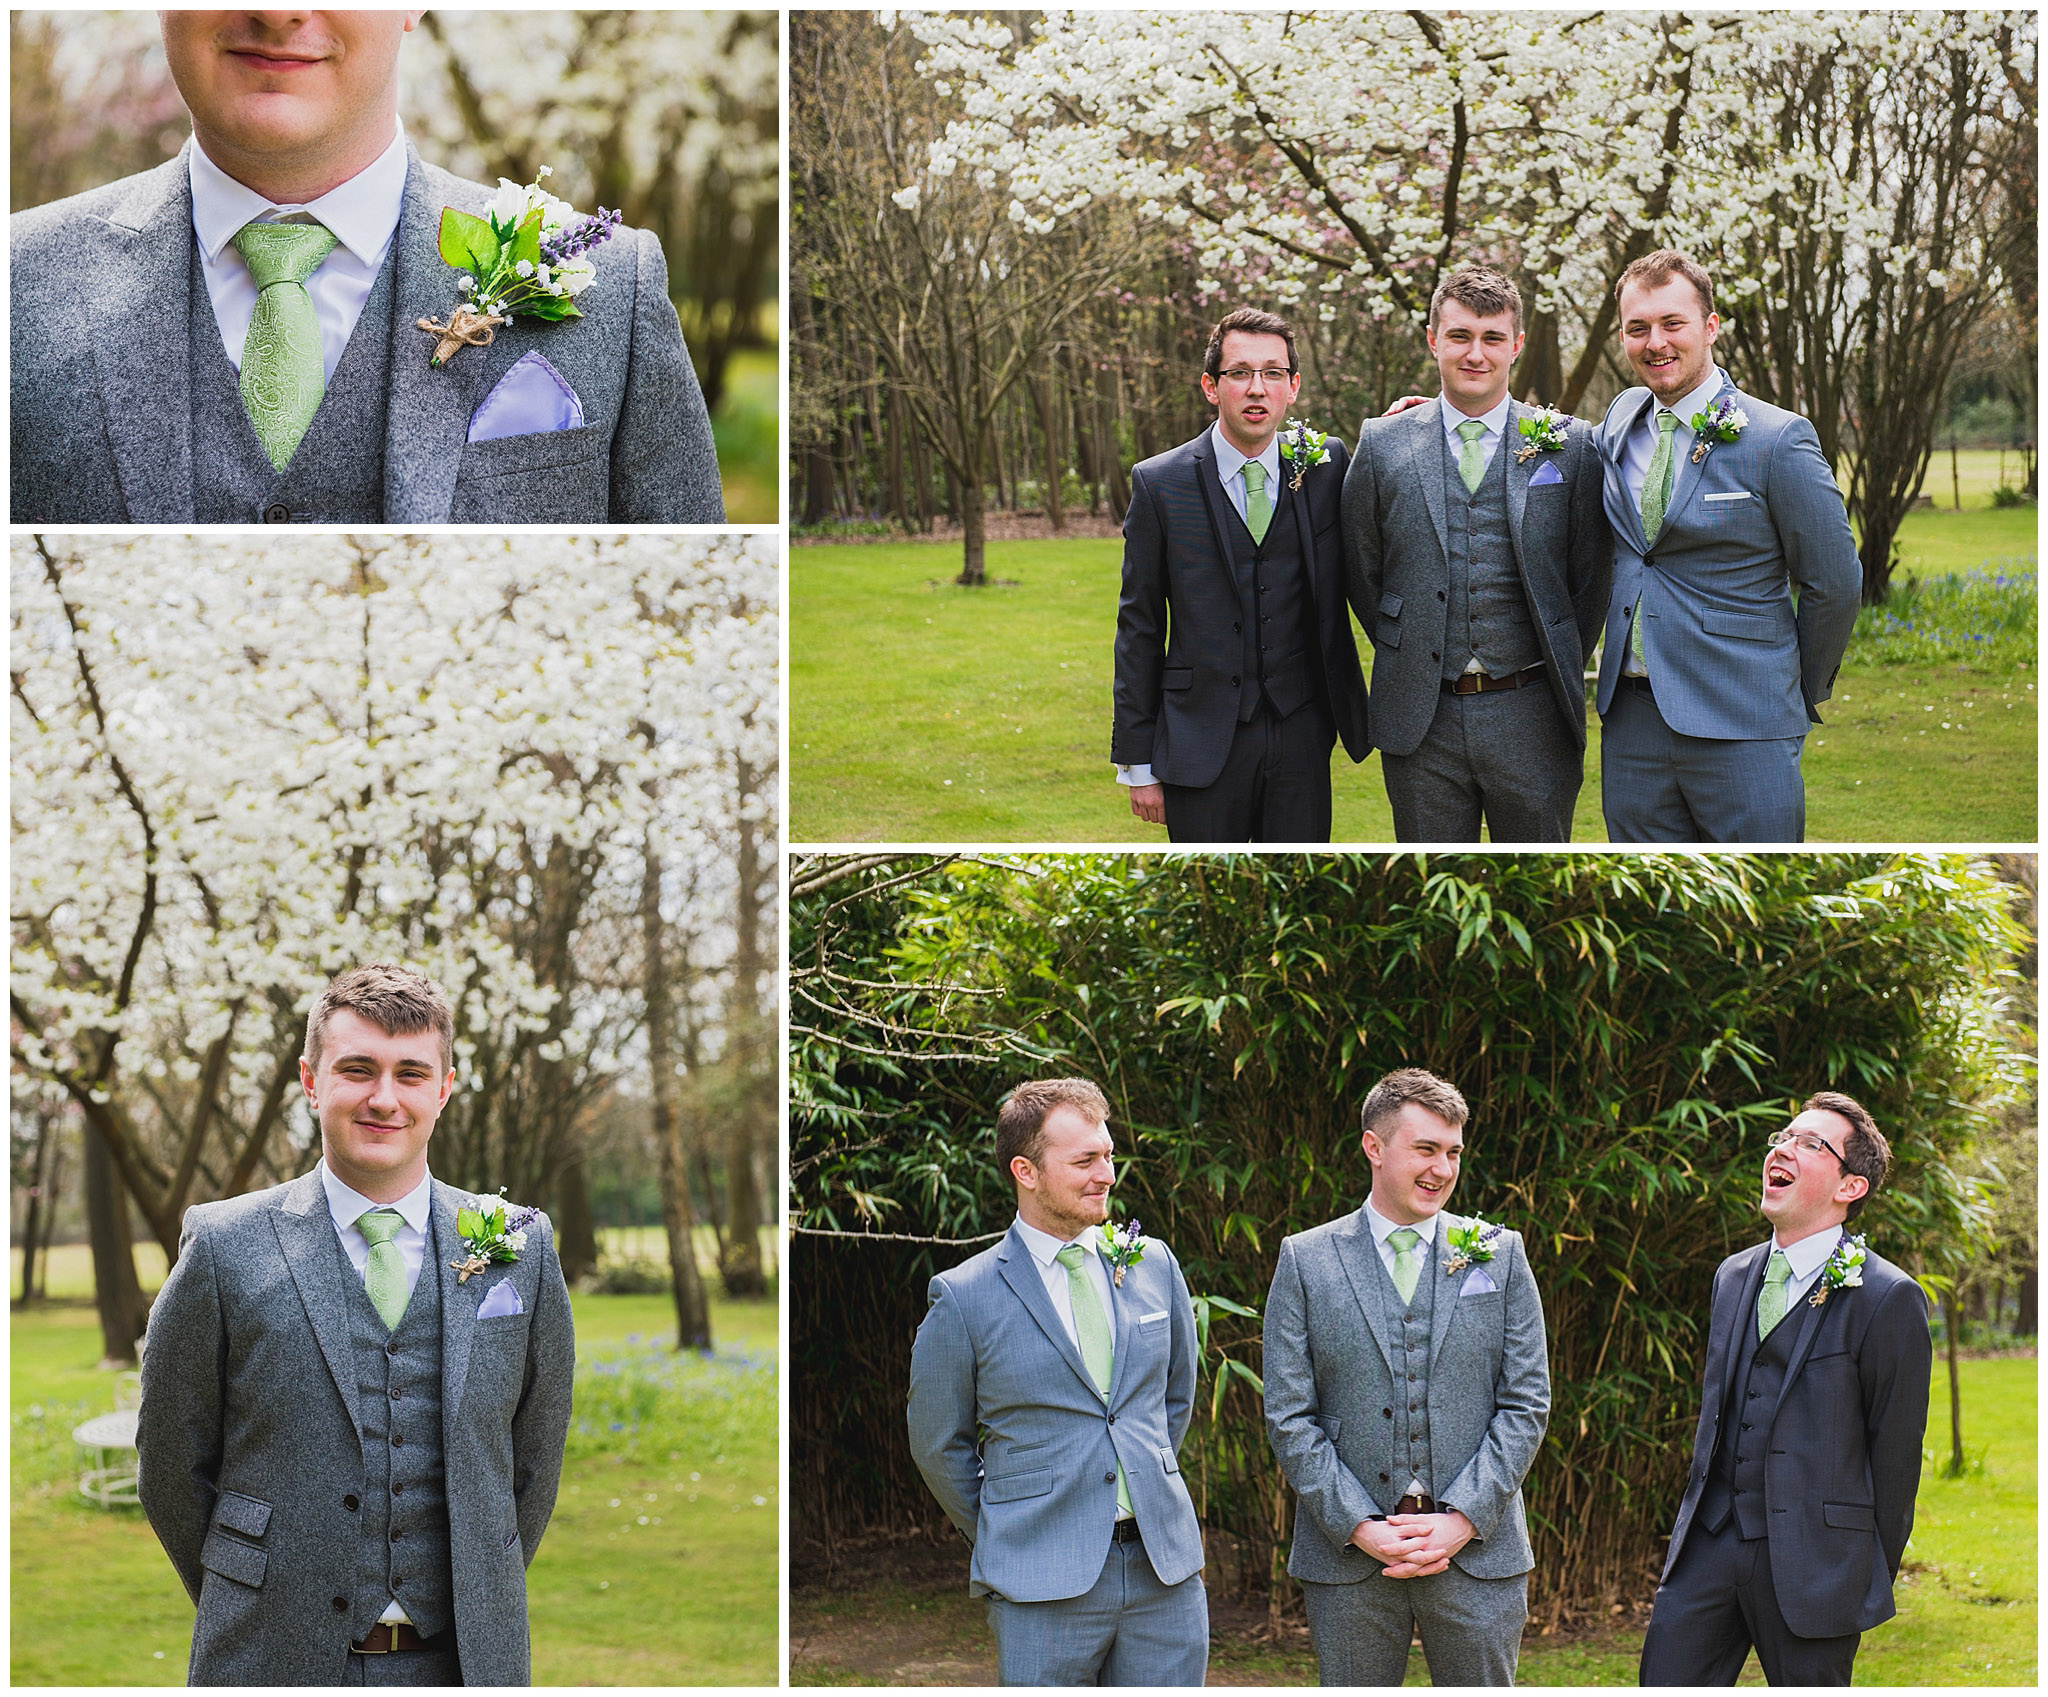 Sarah-&-Dan-The-Old-Vicarage-Wedding-Venue-Dorset-Photographer-3